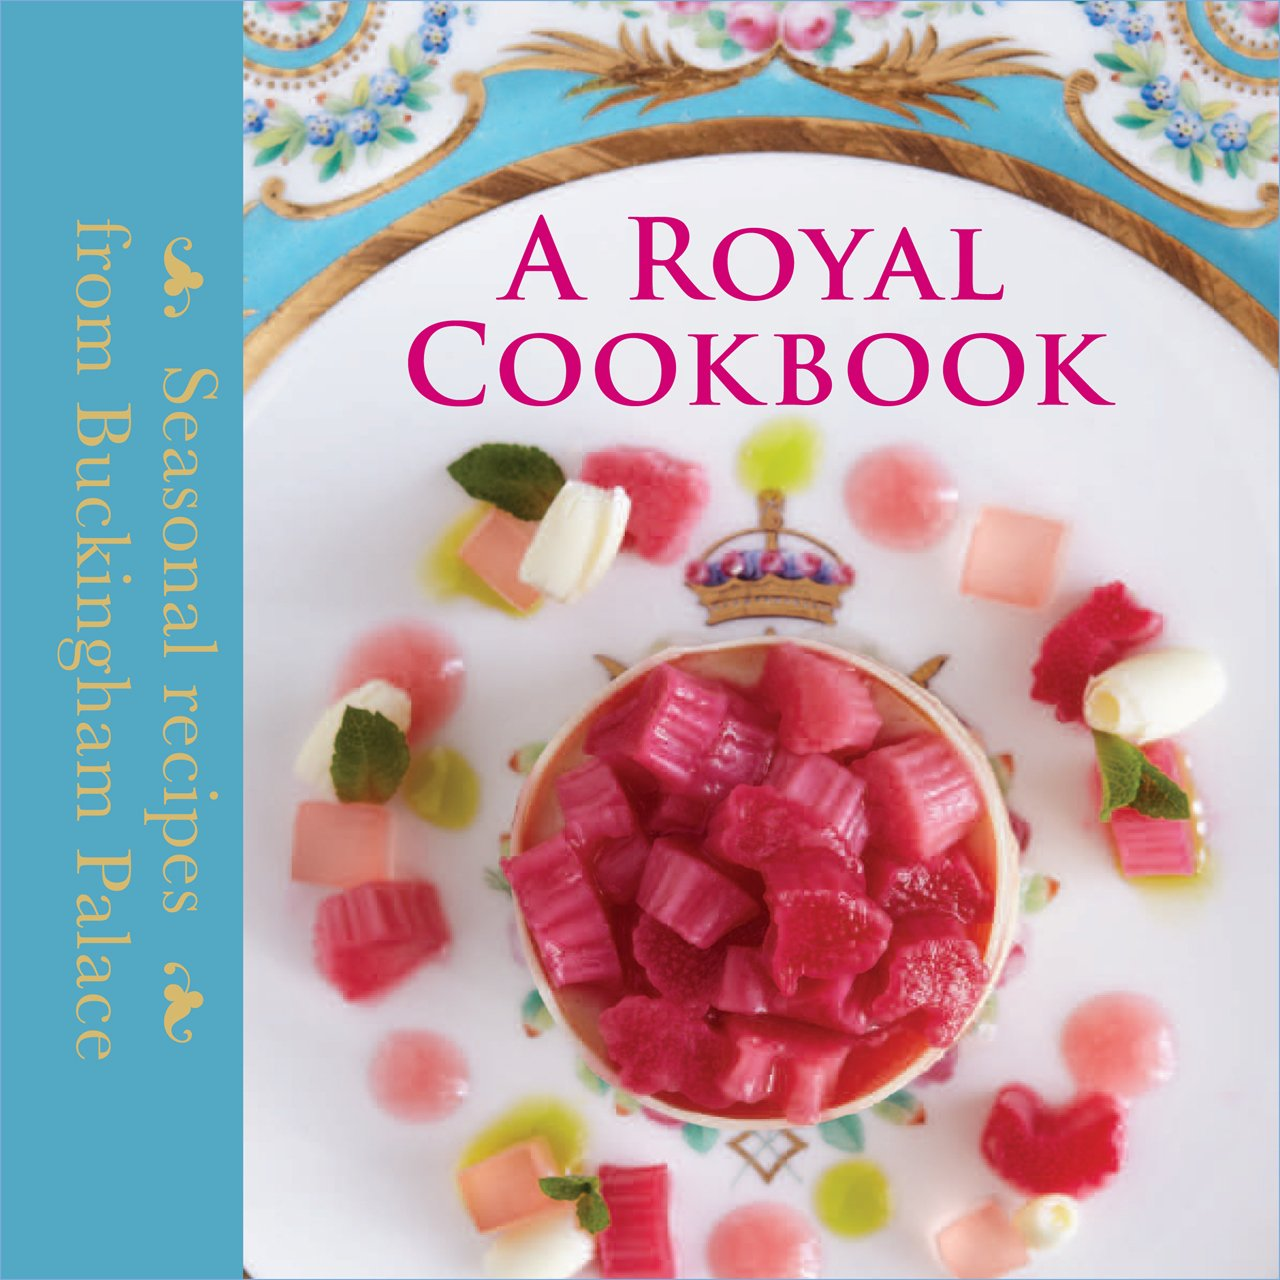 A Royal Cookbook: Seasonal Recipes from Buckingham Palace